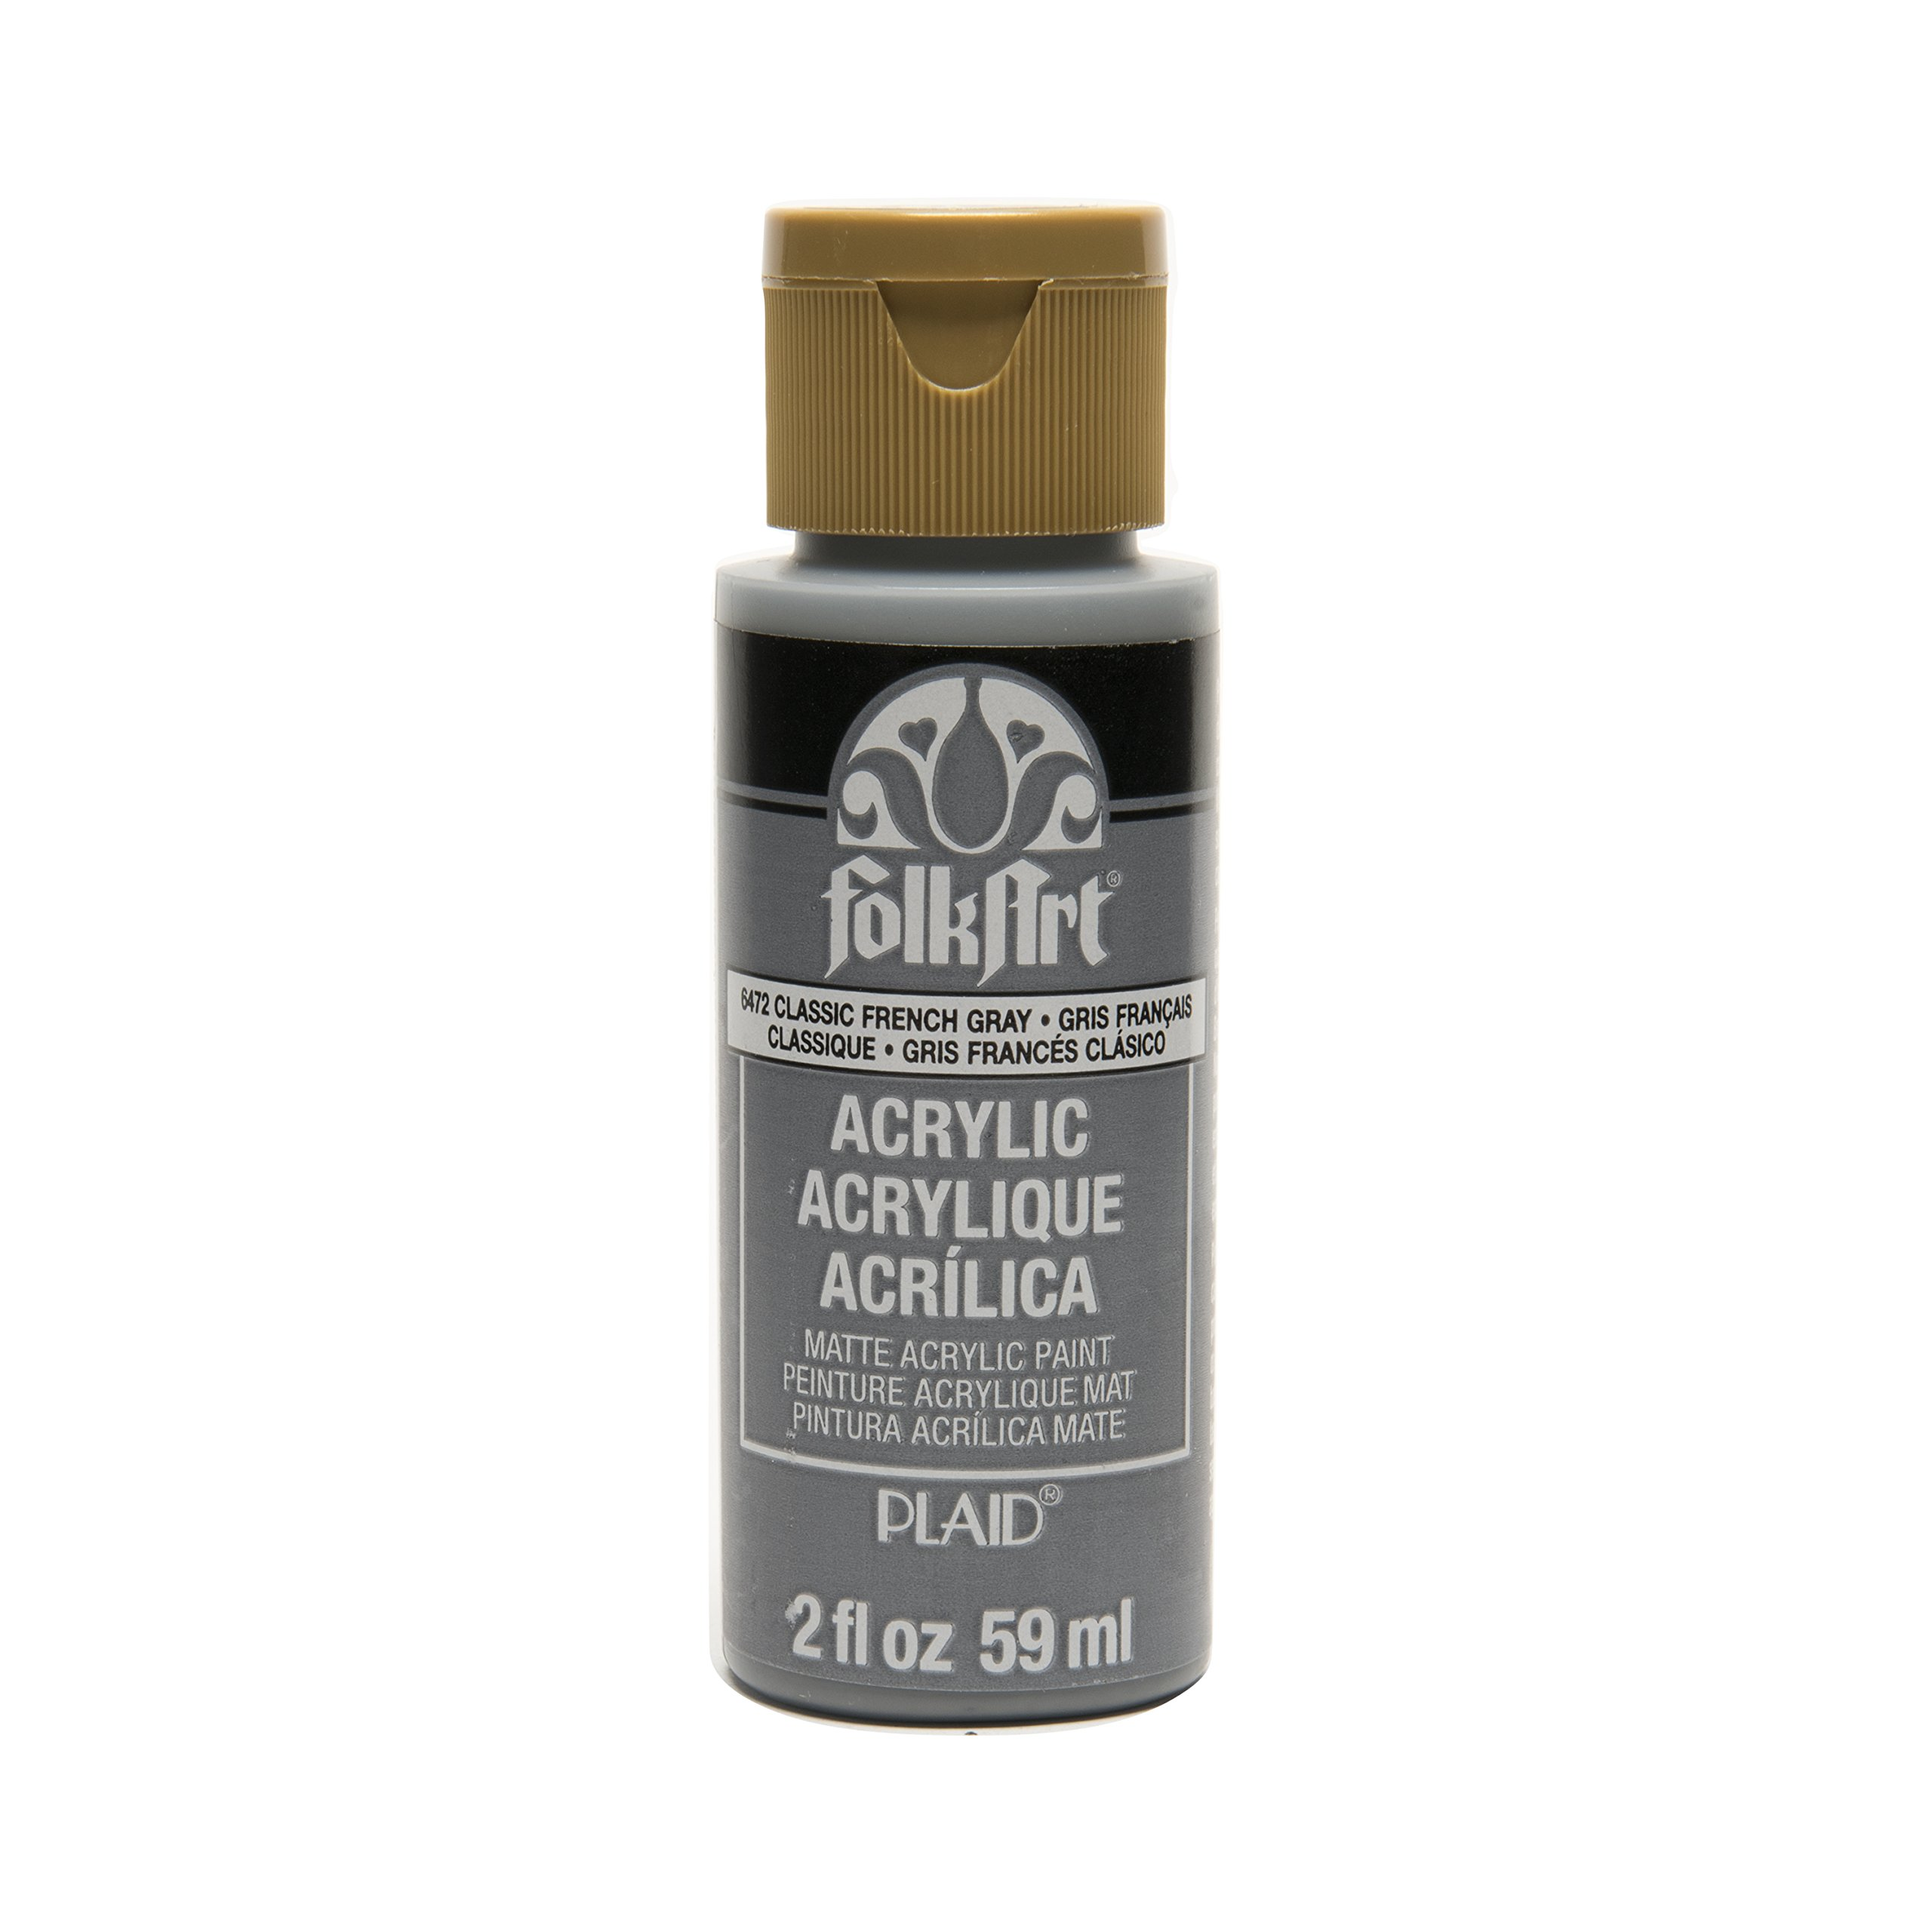 FolkArt Acrylic Paint in Assorted Colors (2 oz), , Classic French Gray